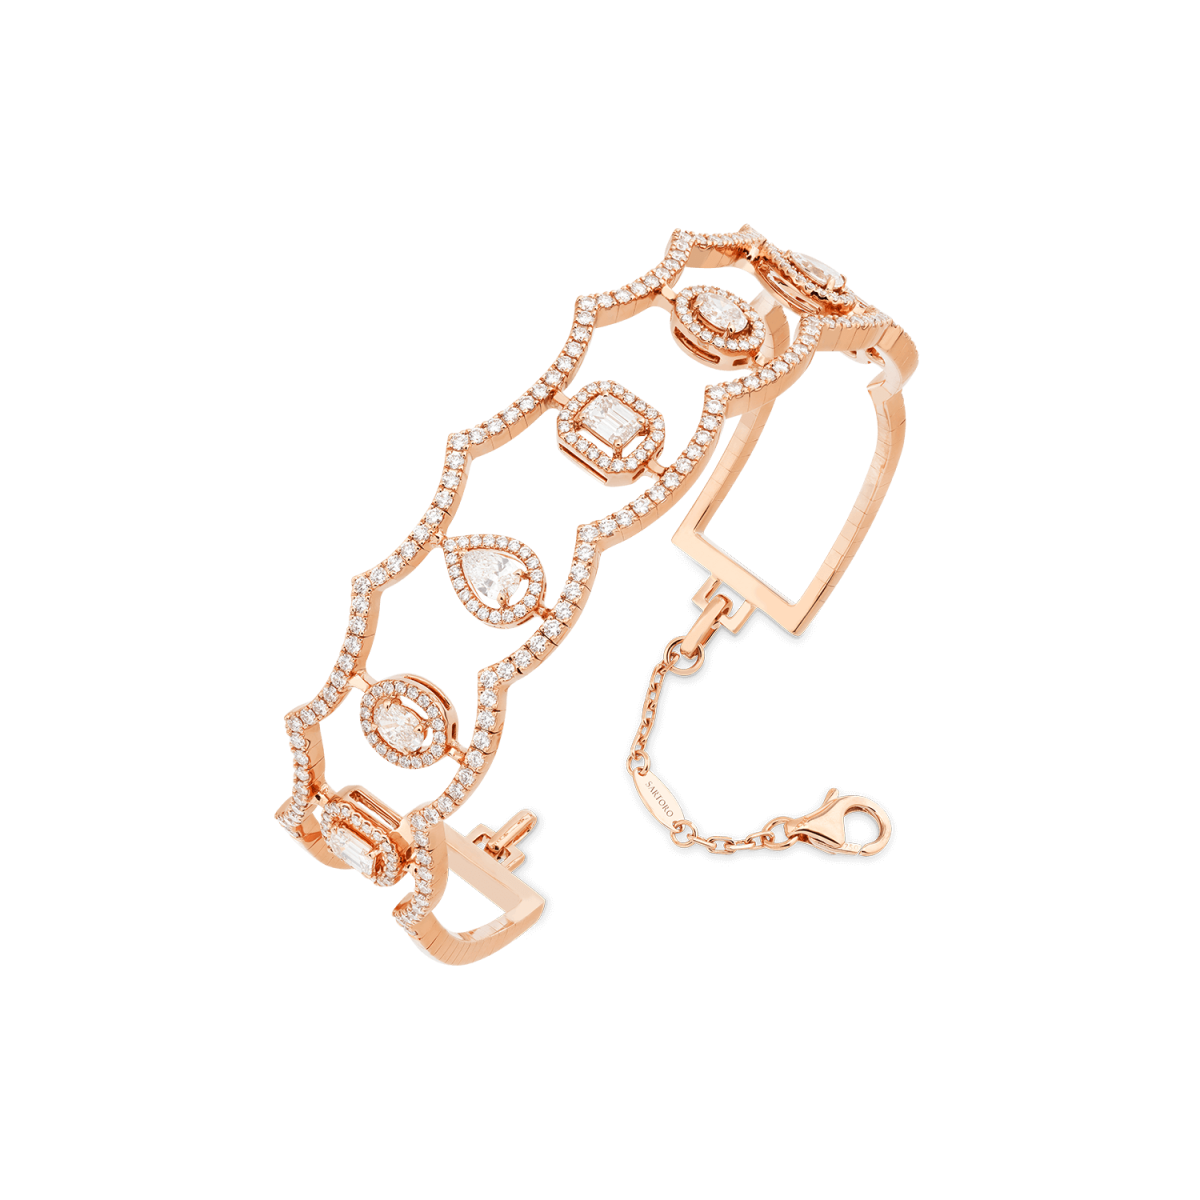 Ariana rose gold bangle with diamonds